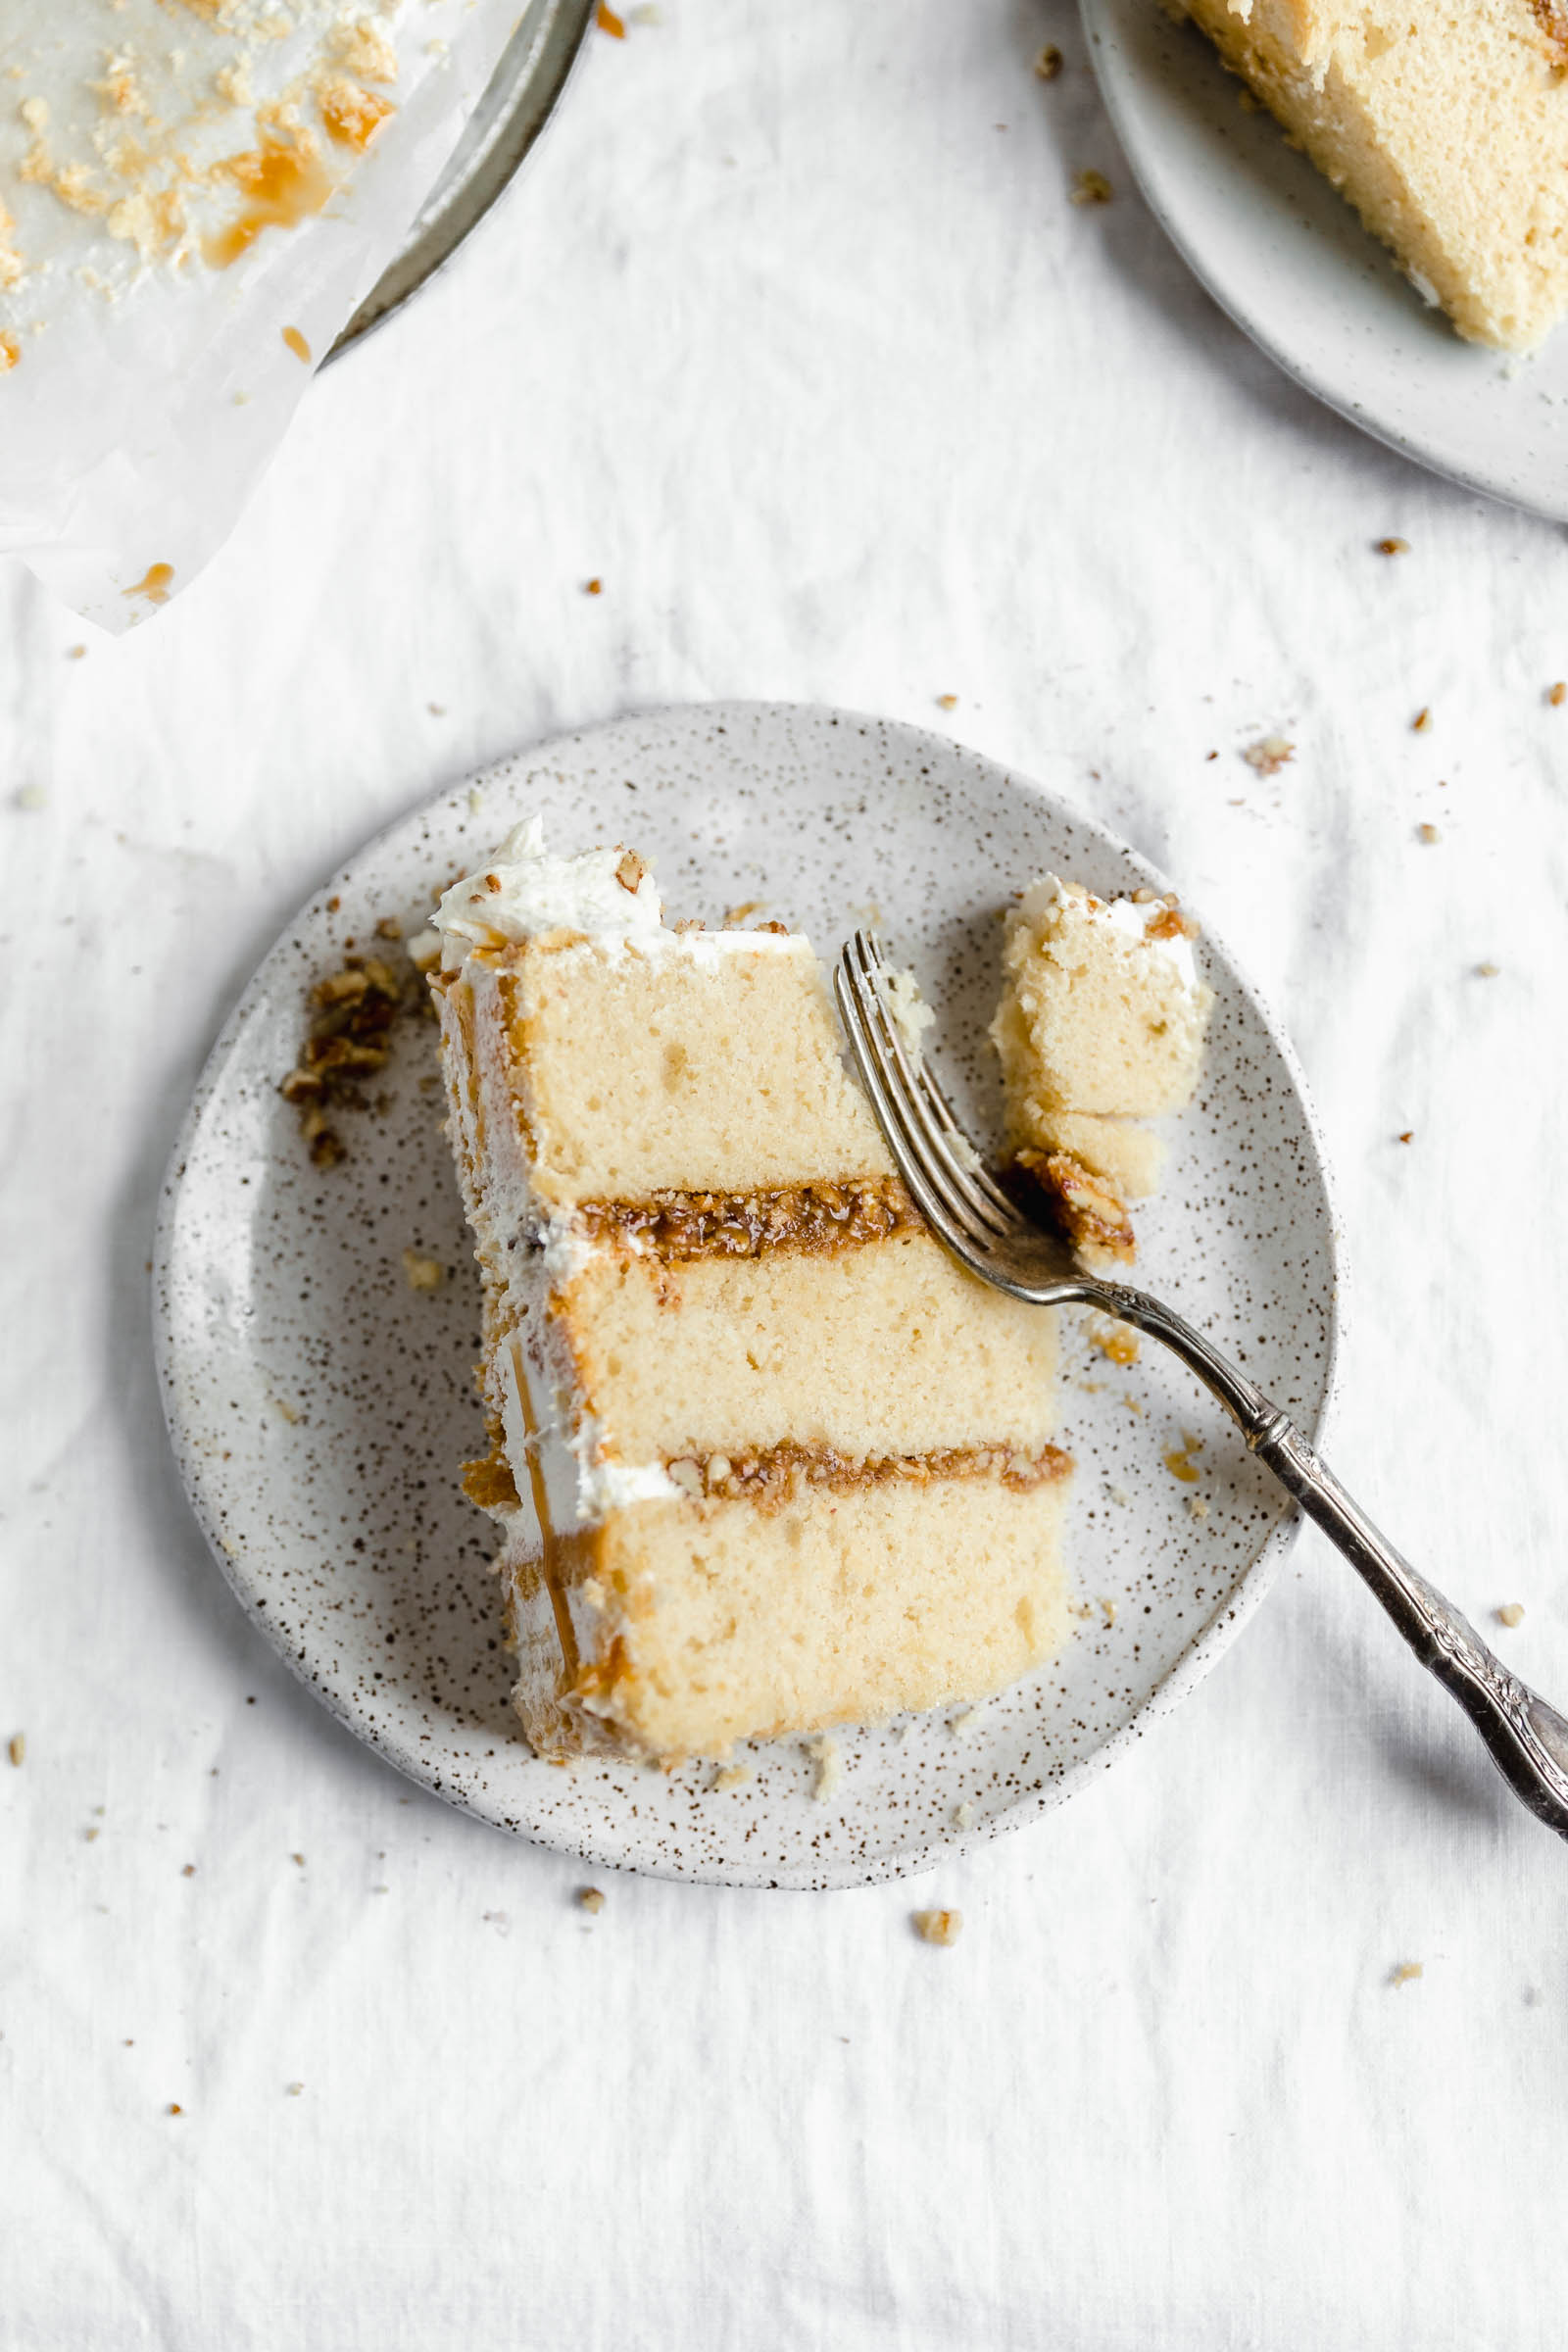 slice of praline layer cake with a bite taken out